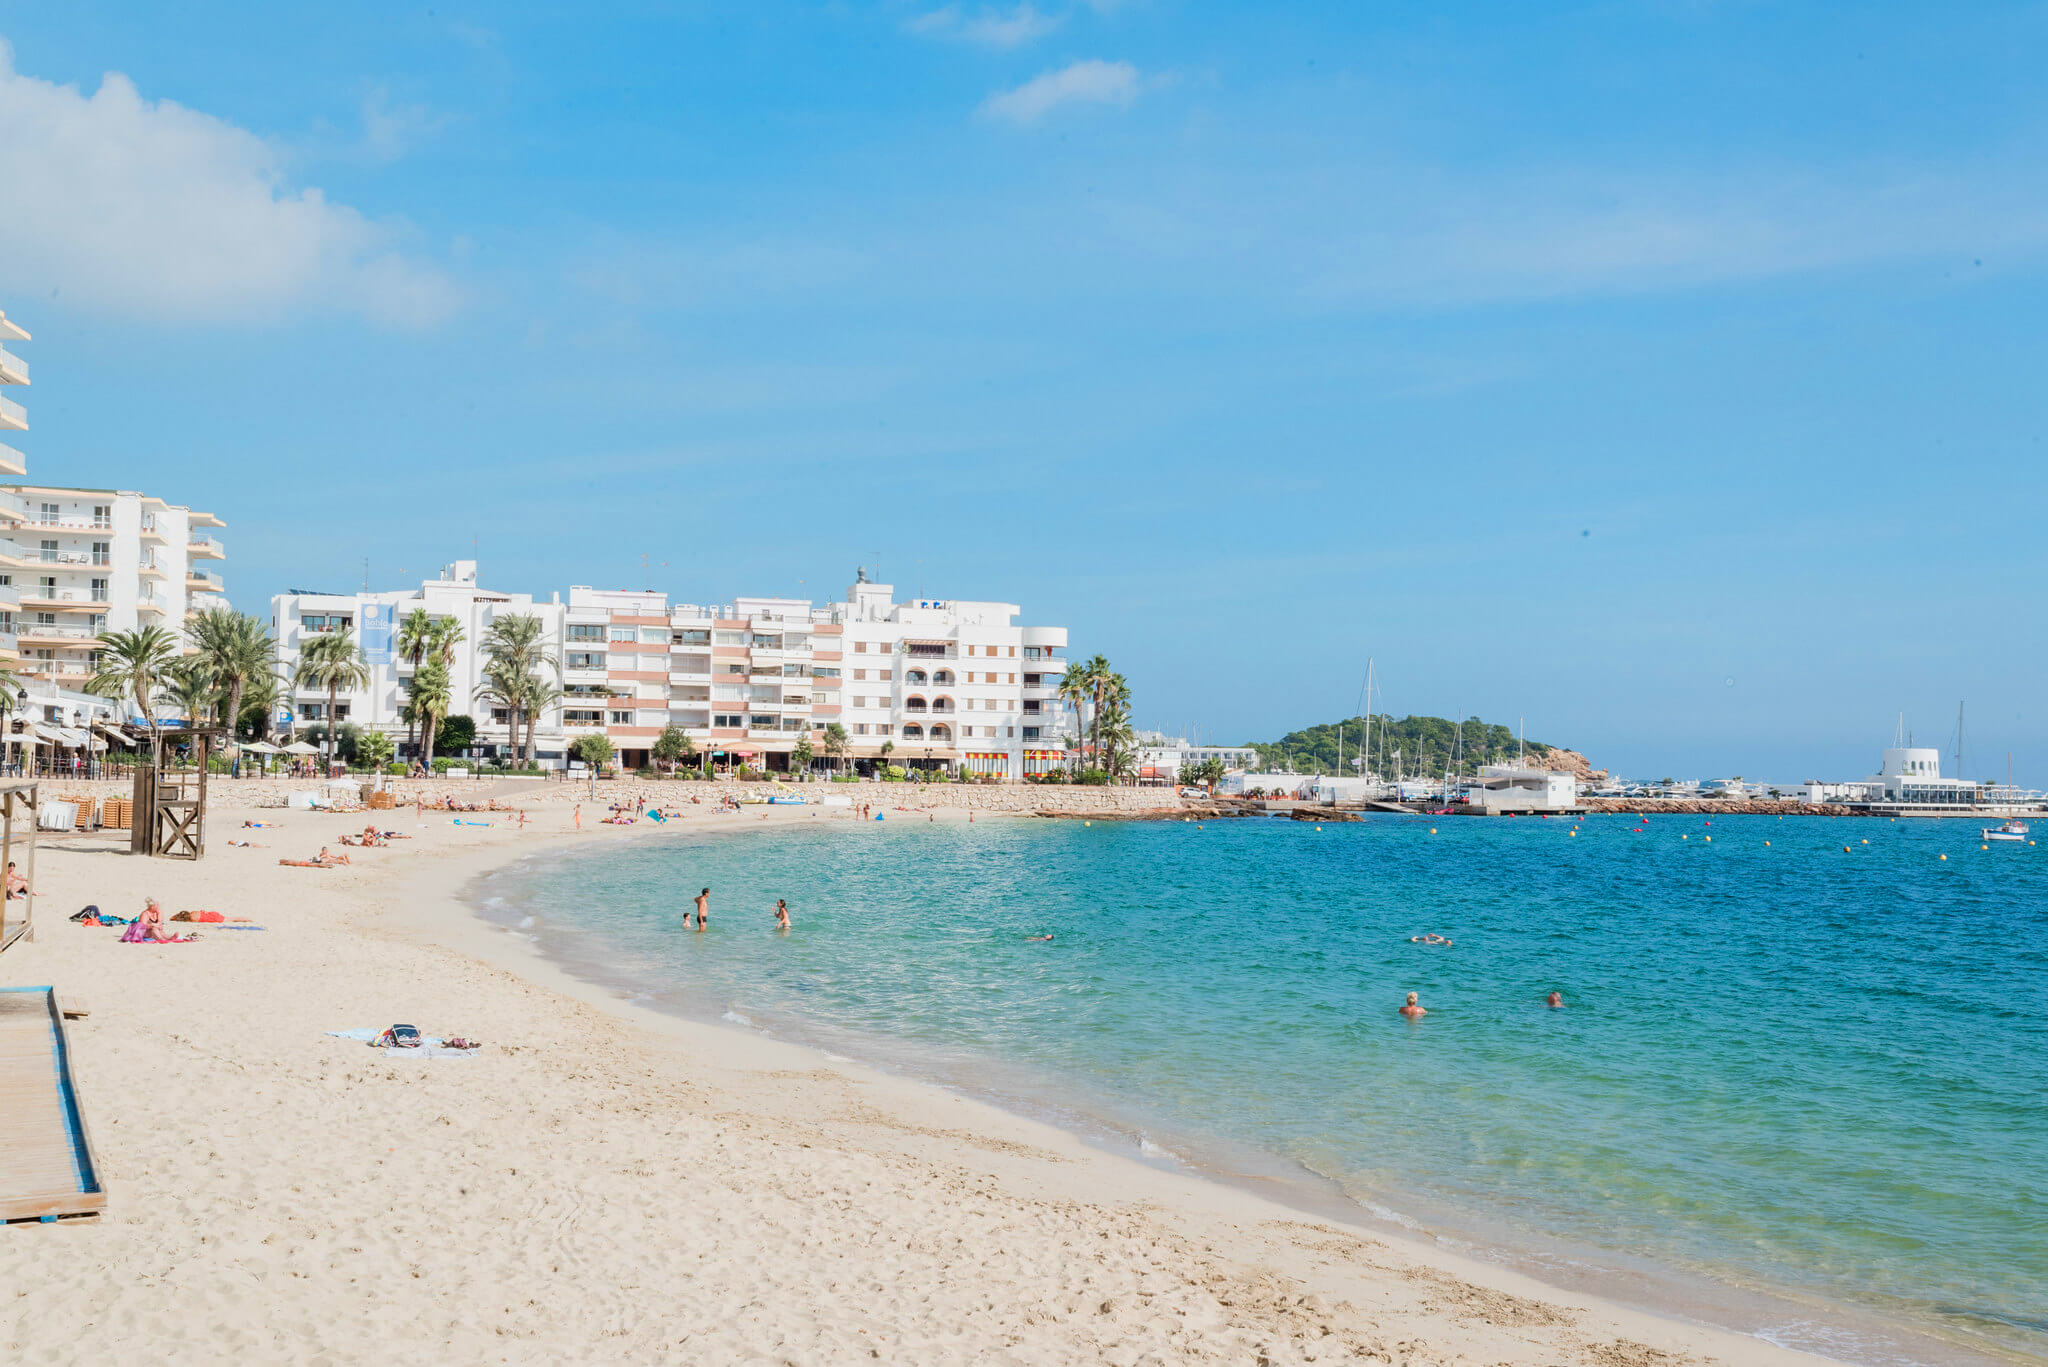 https://www.white-ibiza.com/wp-content/uploads/2020/03/ibiza-beaches-santa-eulalia-06.jpg